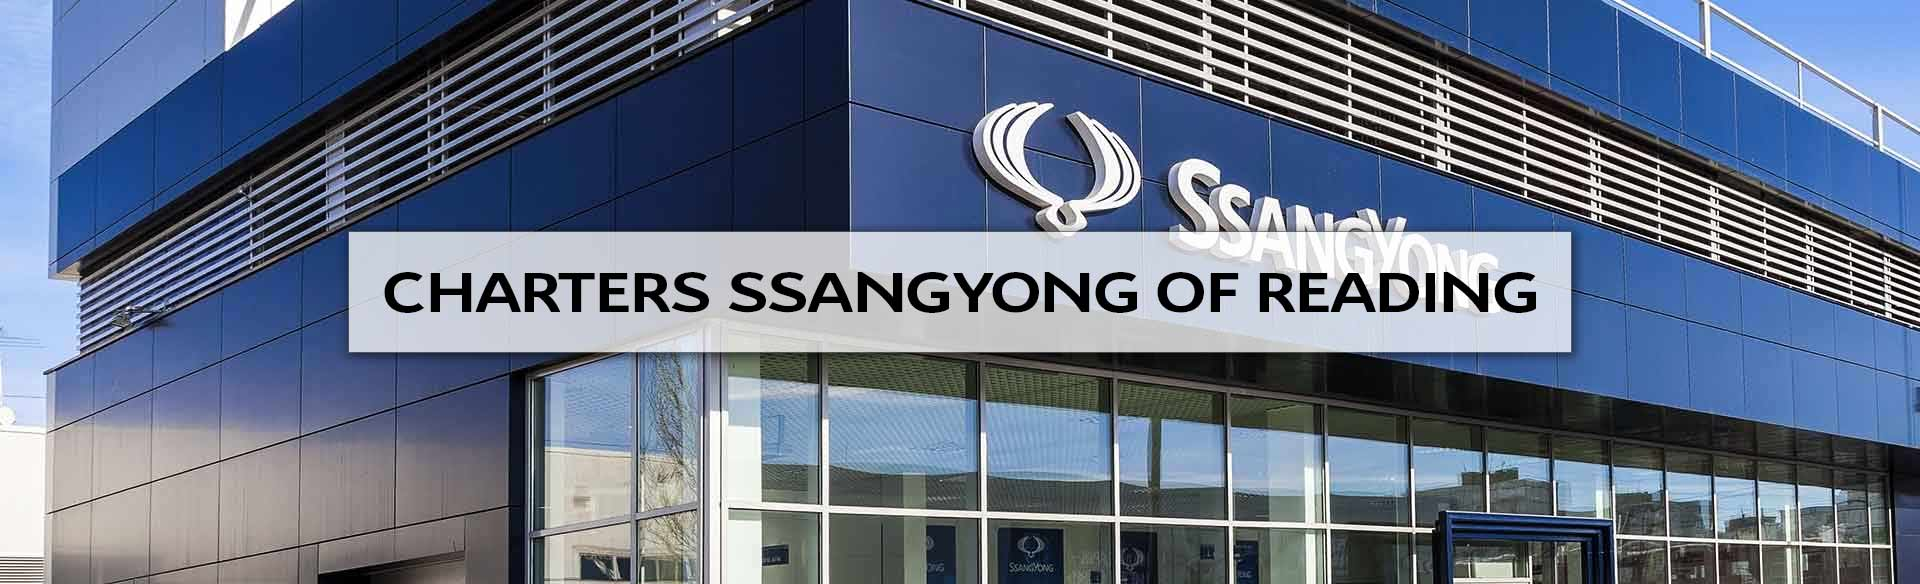 charters-ssangyong-reading-showroom-sli